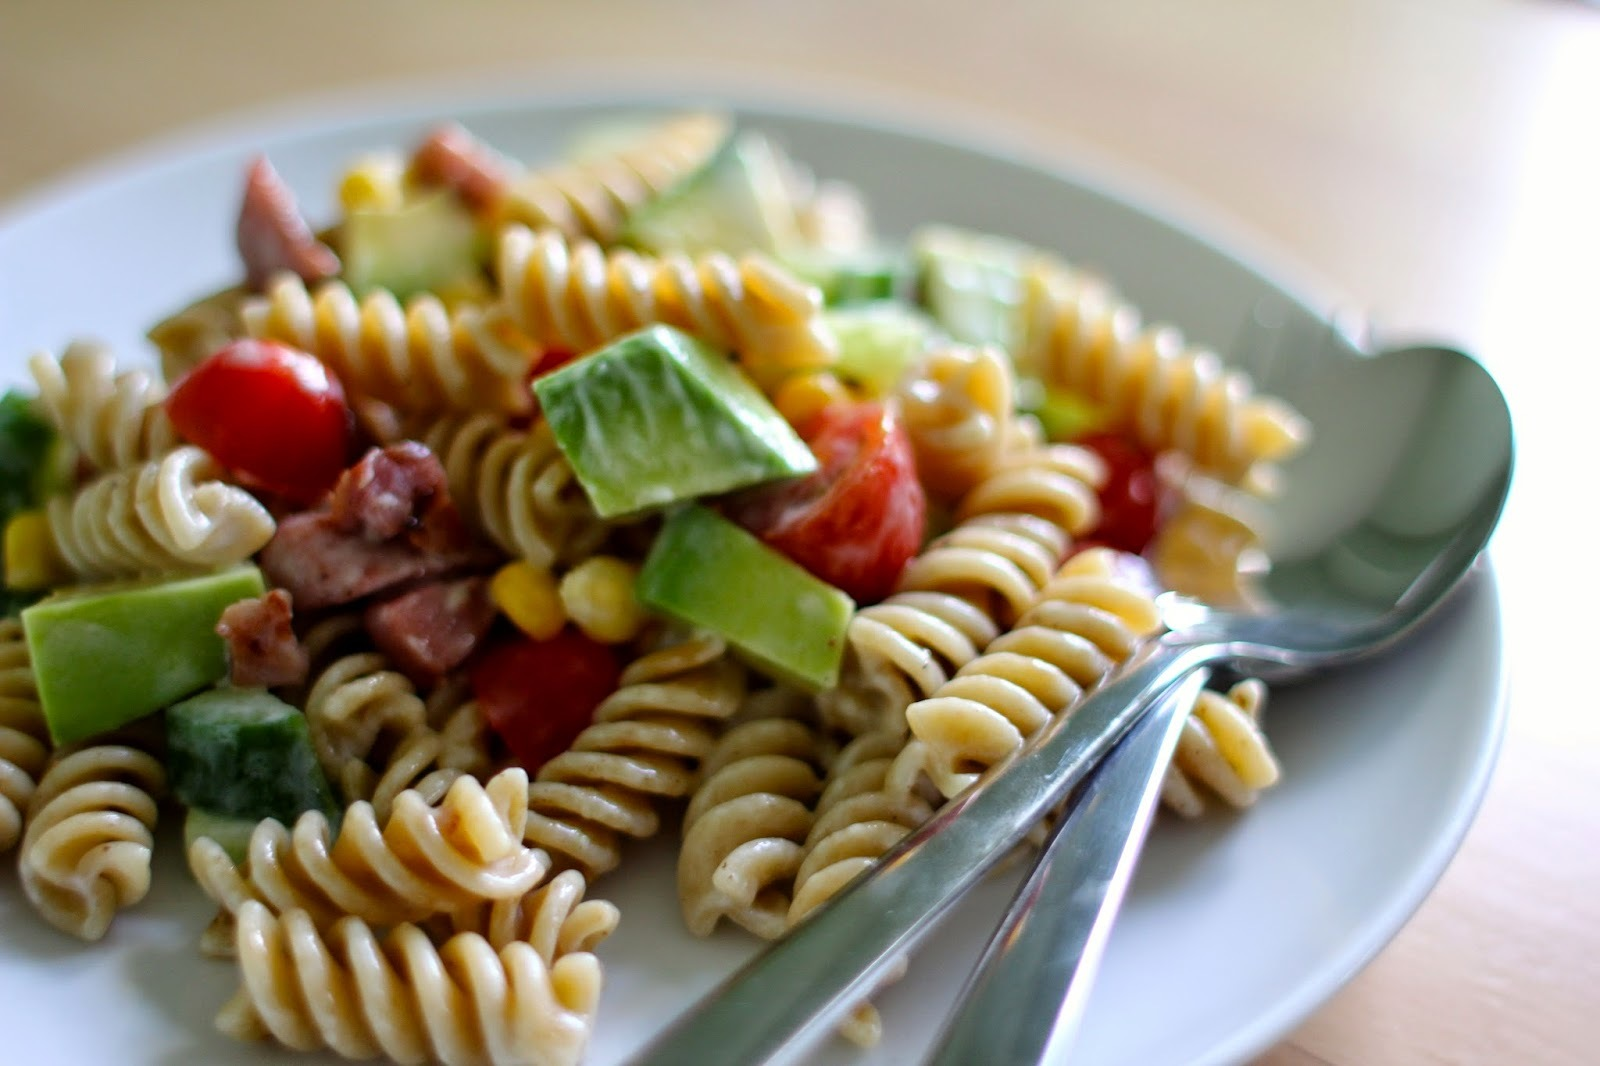 Pasta Salad for the Whole Family